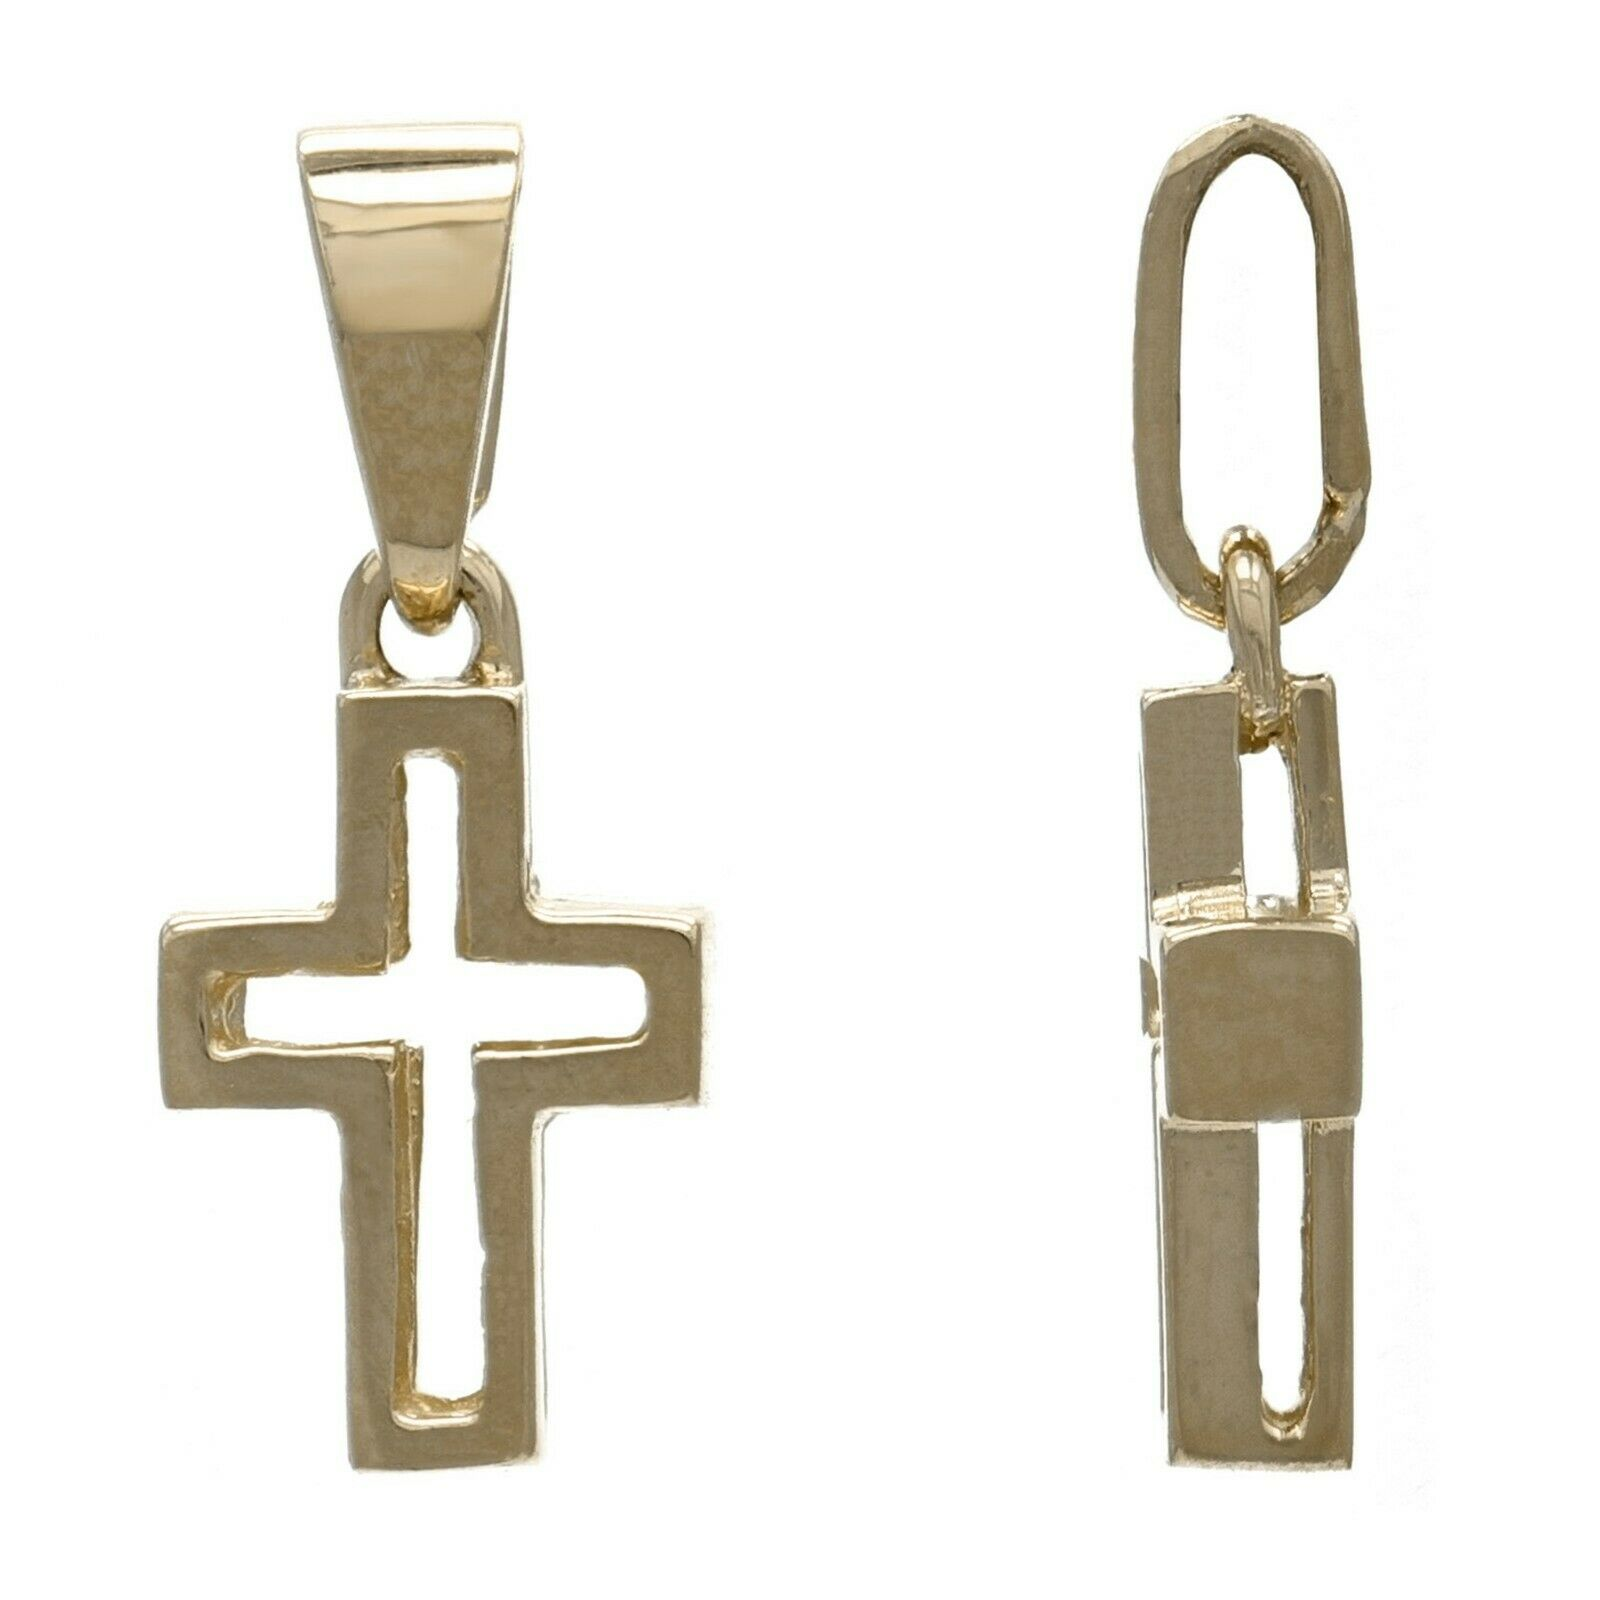 14k Yellow Gold Solid Small Cross Religious Charm Pendant 1.2 grams